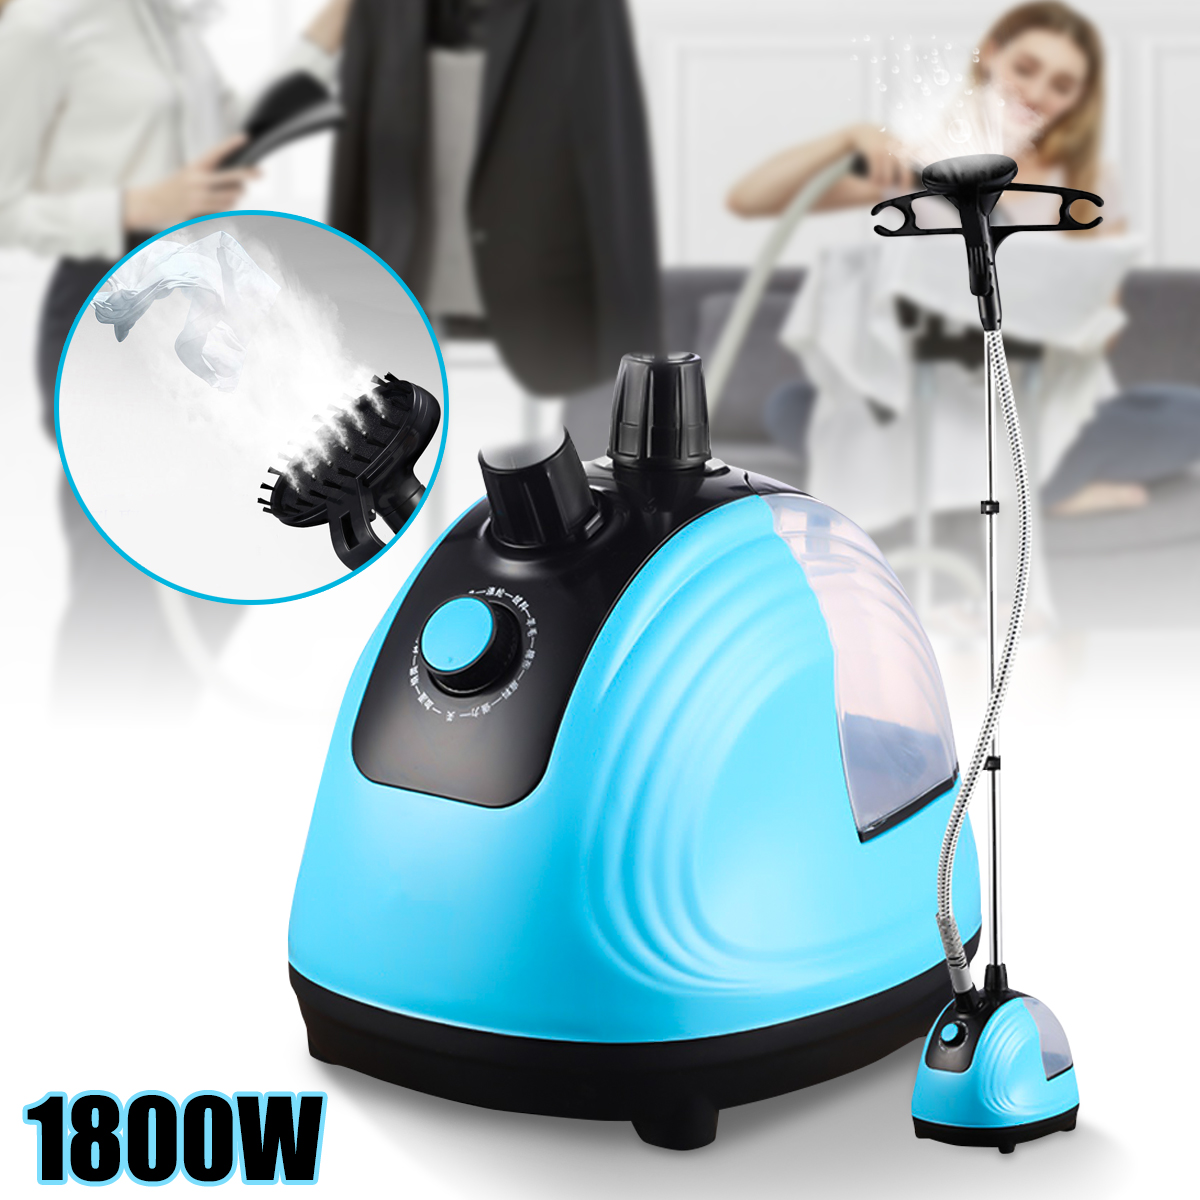 1800W HandHeld Garment Steamer Adjustable Household Clothes Iron Steamer 220V Hanging Ironing Machine Mini Ironer Steamer1800W HandHeld Garment Steamer Adjustable Household Clothes Iron Steamer 220V Hanging Ironing Machine Mini Ironer Steamer